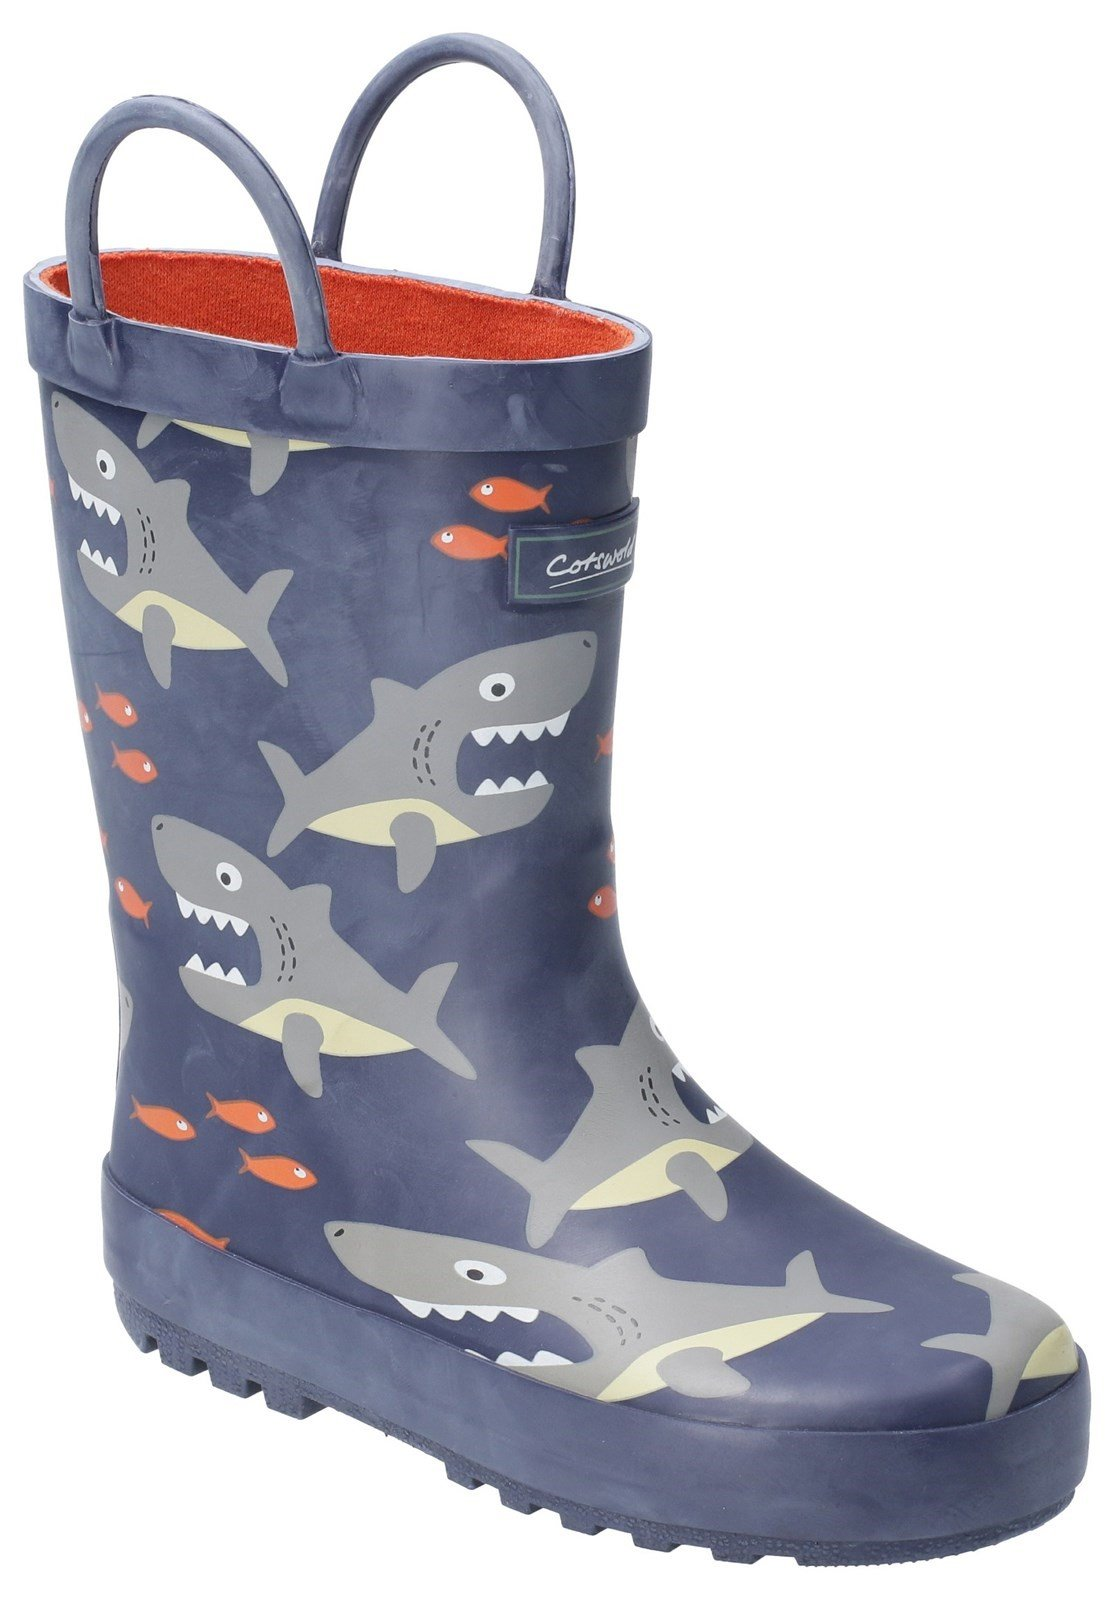 Cotswold Kids Puddle Waterproof Pull On Boot Multicolor 20962 - Shark 4.5